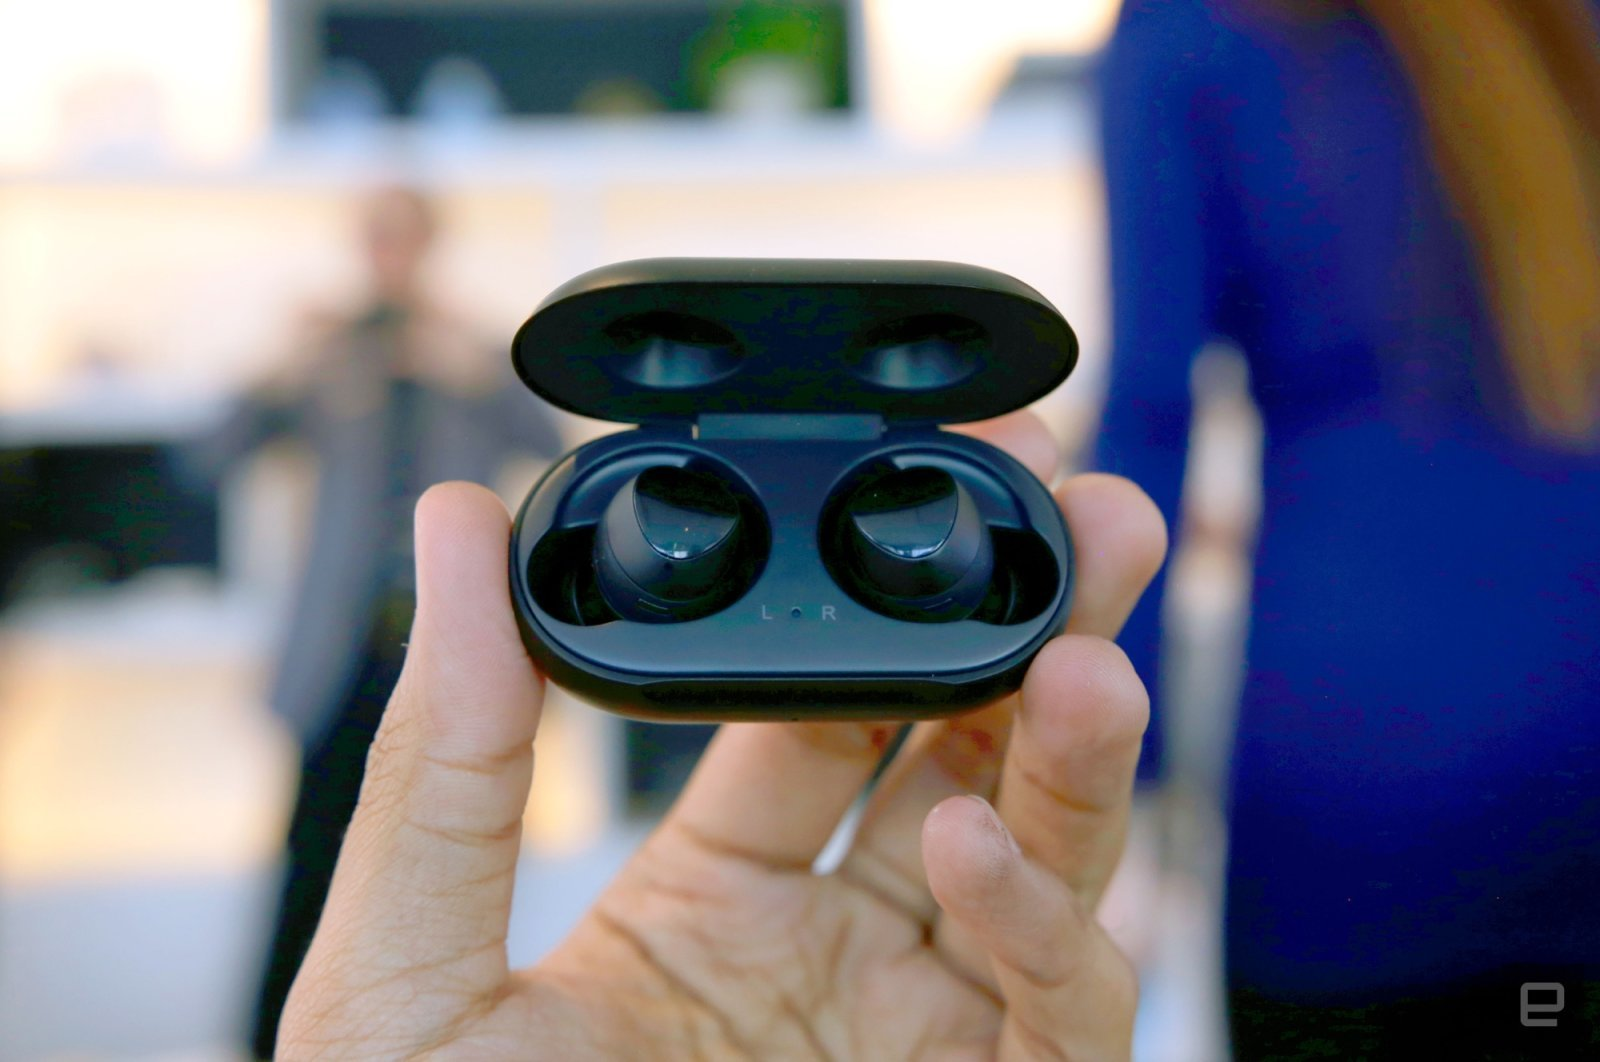 New LG Self- cleaning wireless earbuds - Full specs and Review